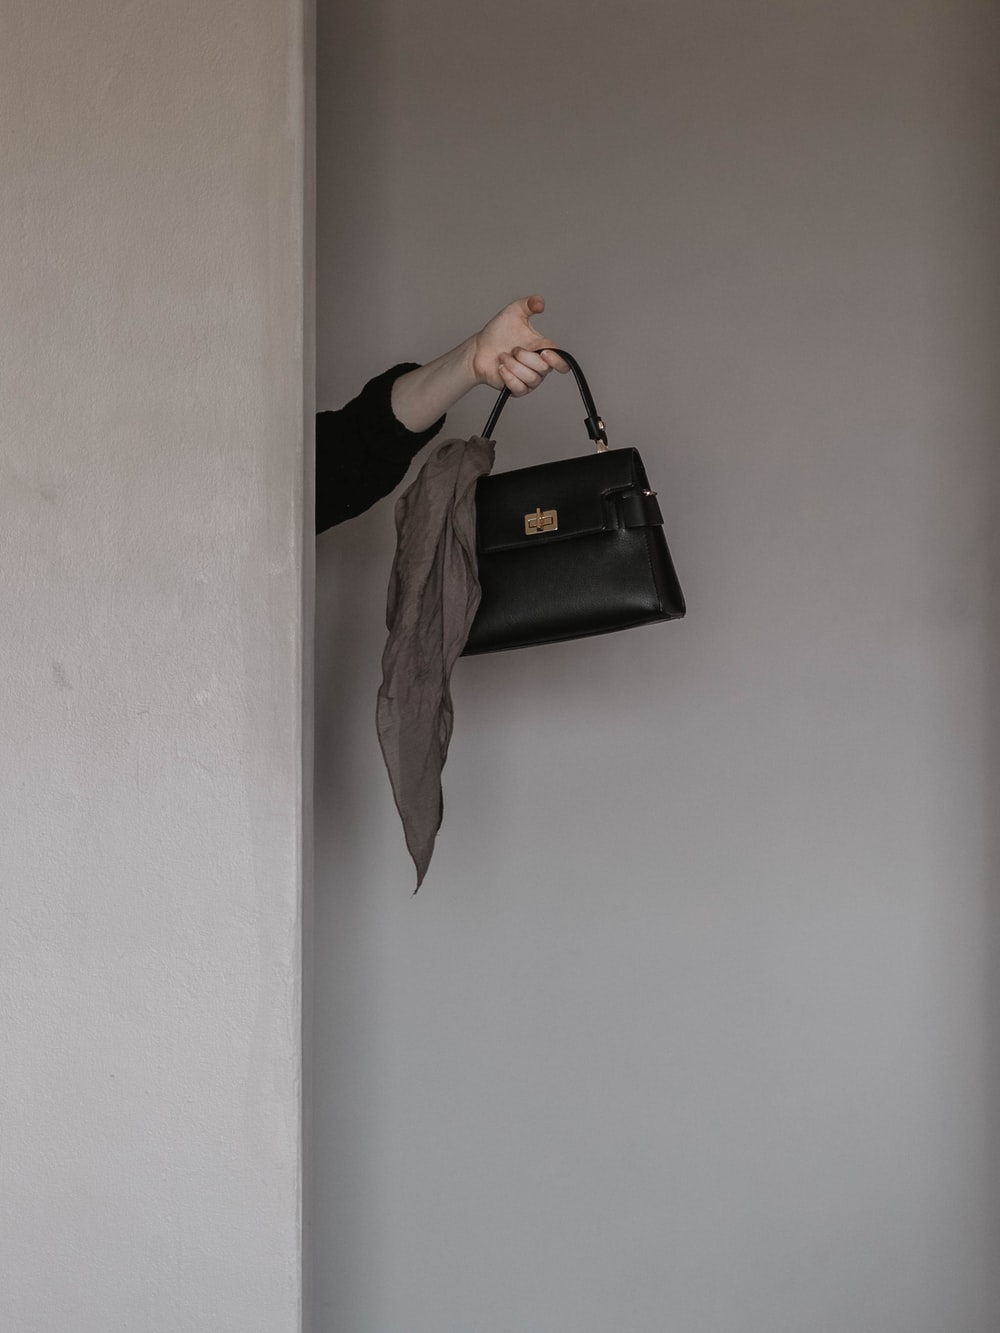 person holding black leather handbag